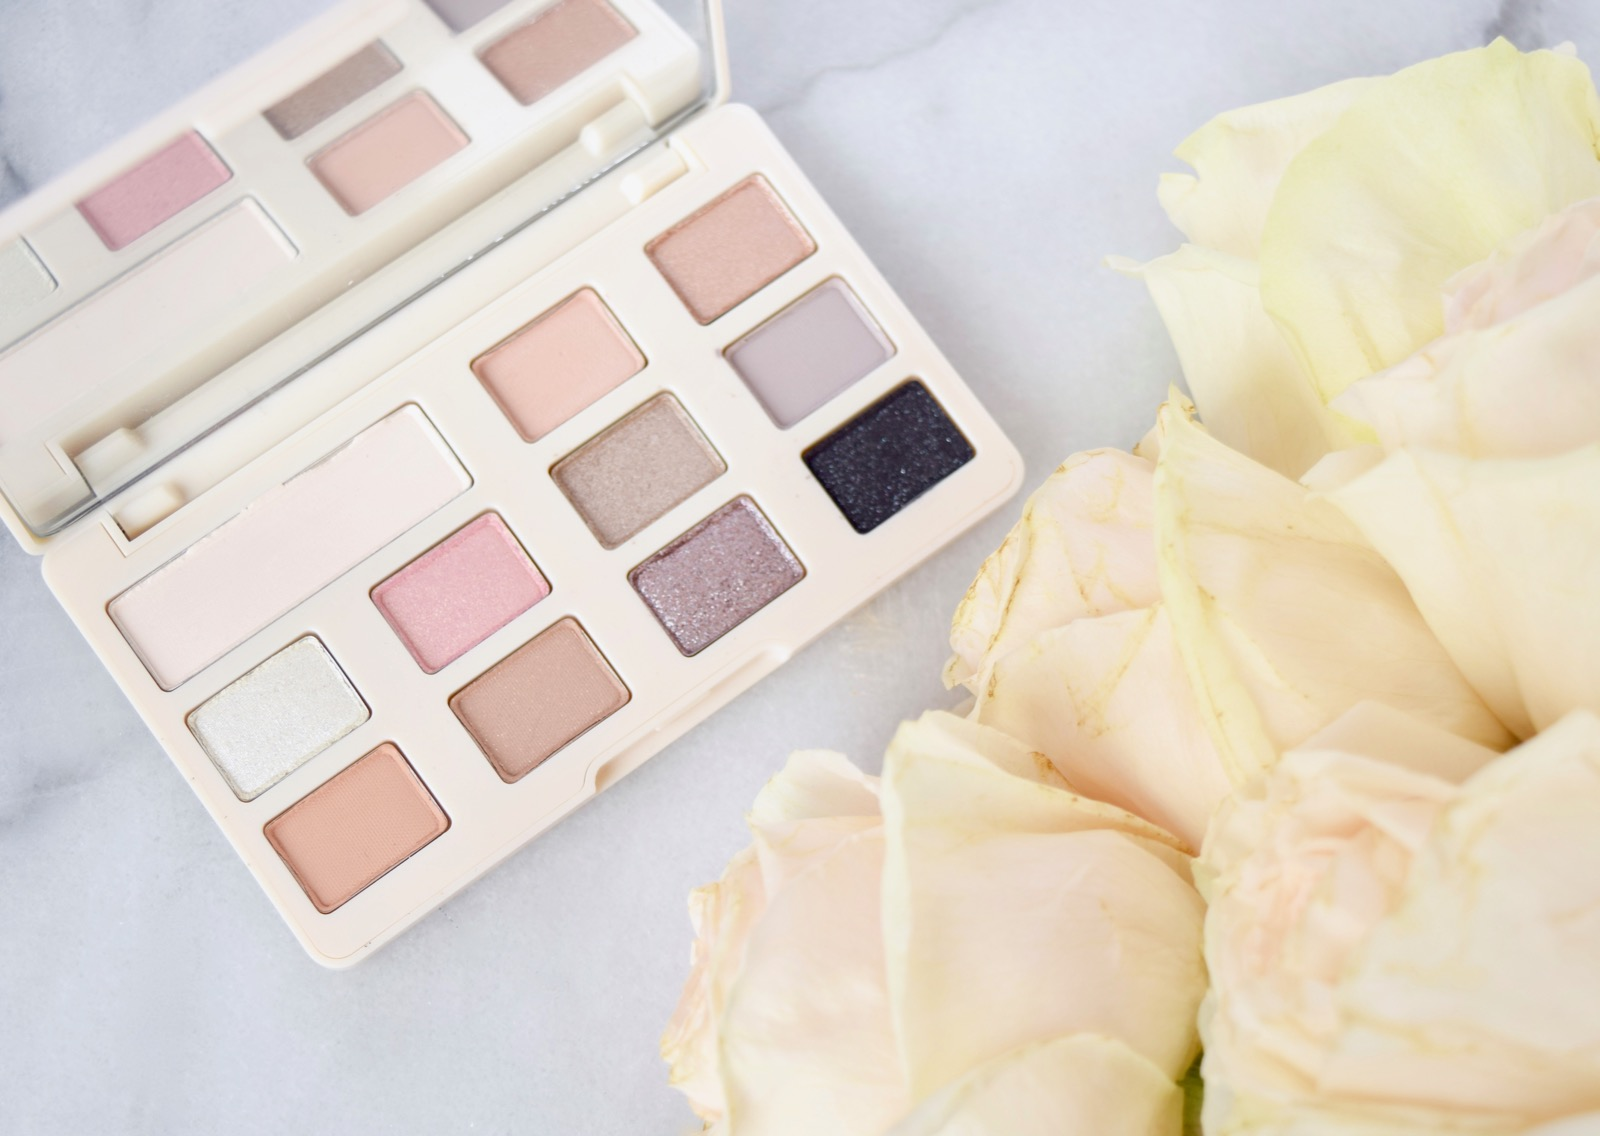 Too Faced White Chocolate Eye Shadow Palette